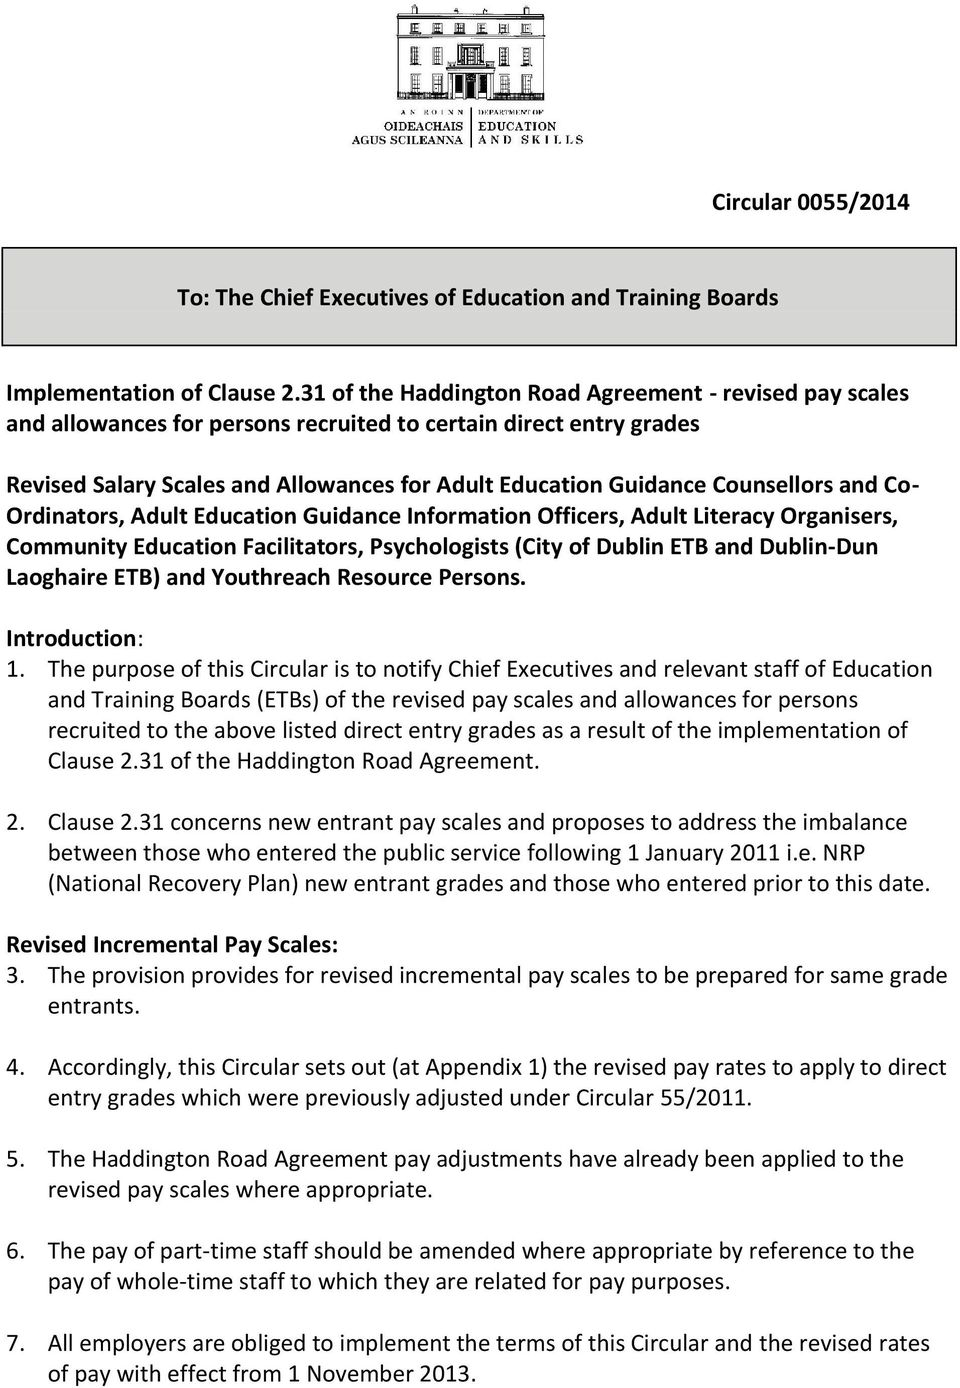 Co- Ordinators, Adult Education Guidance Information Officers, Adult Literacy Organisers, Community Education Facilitators, Psychologists (City of Dublin ETB and Dublin-Dun Laoghaire ETB) and